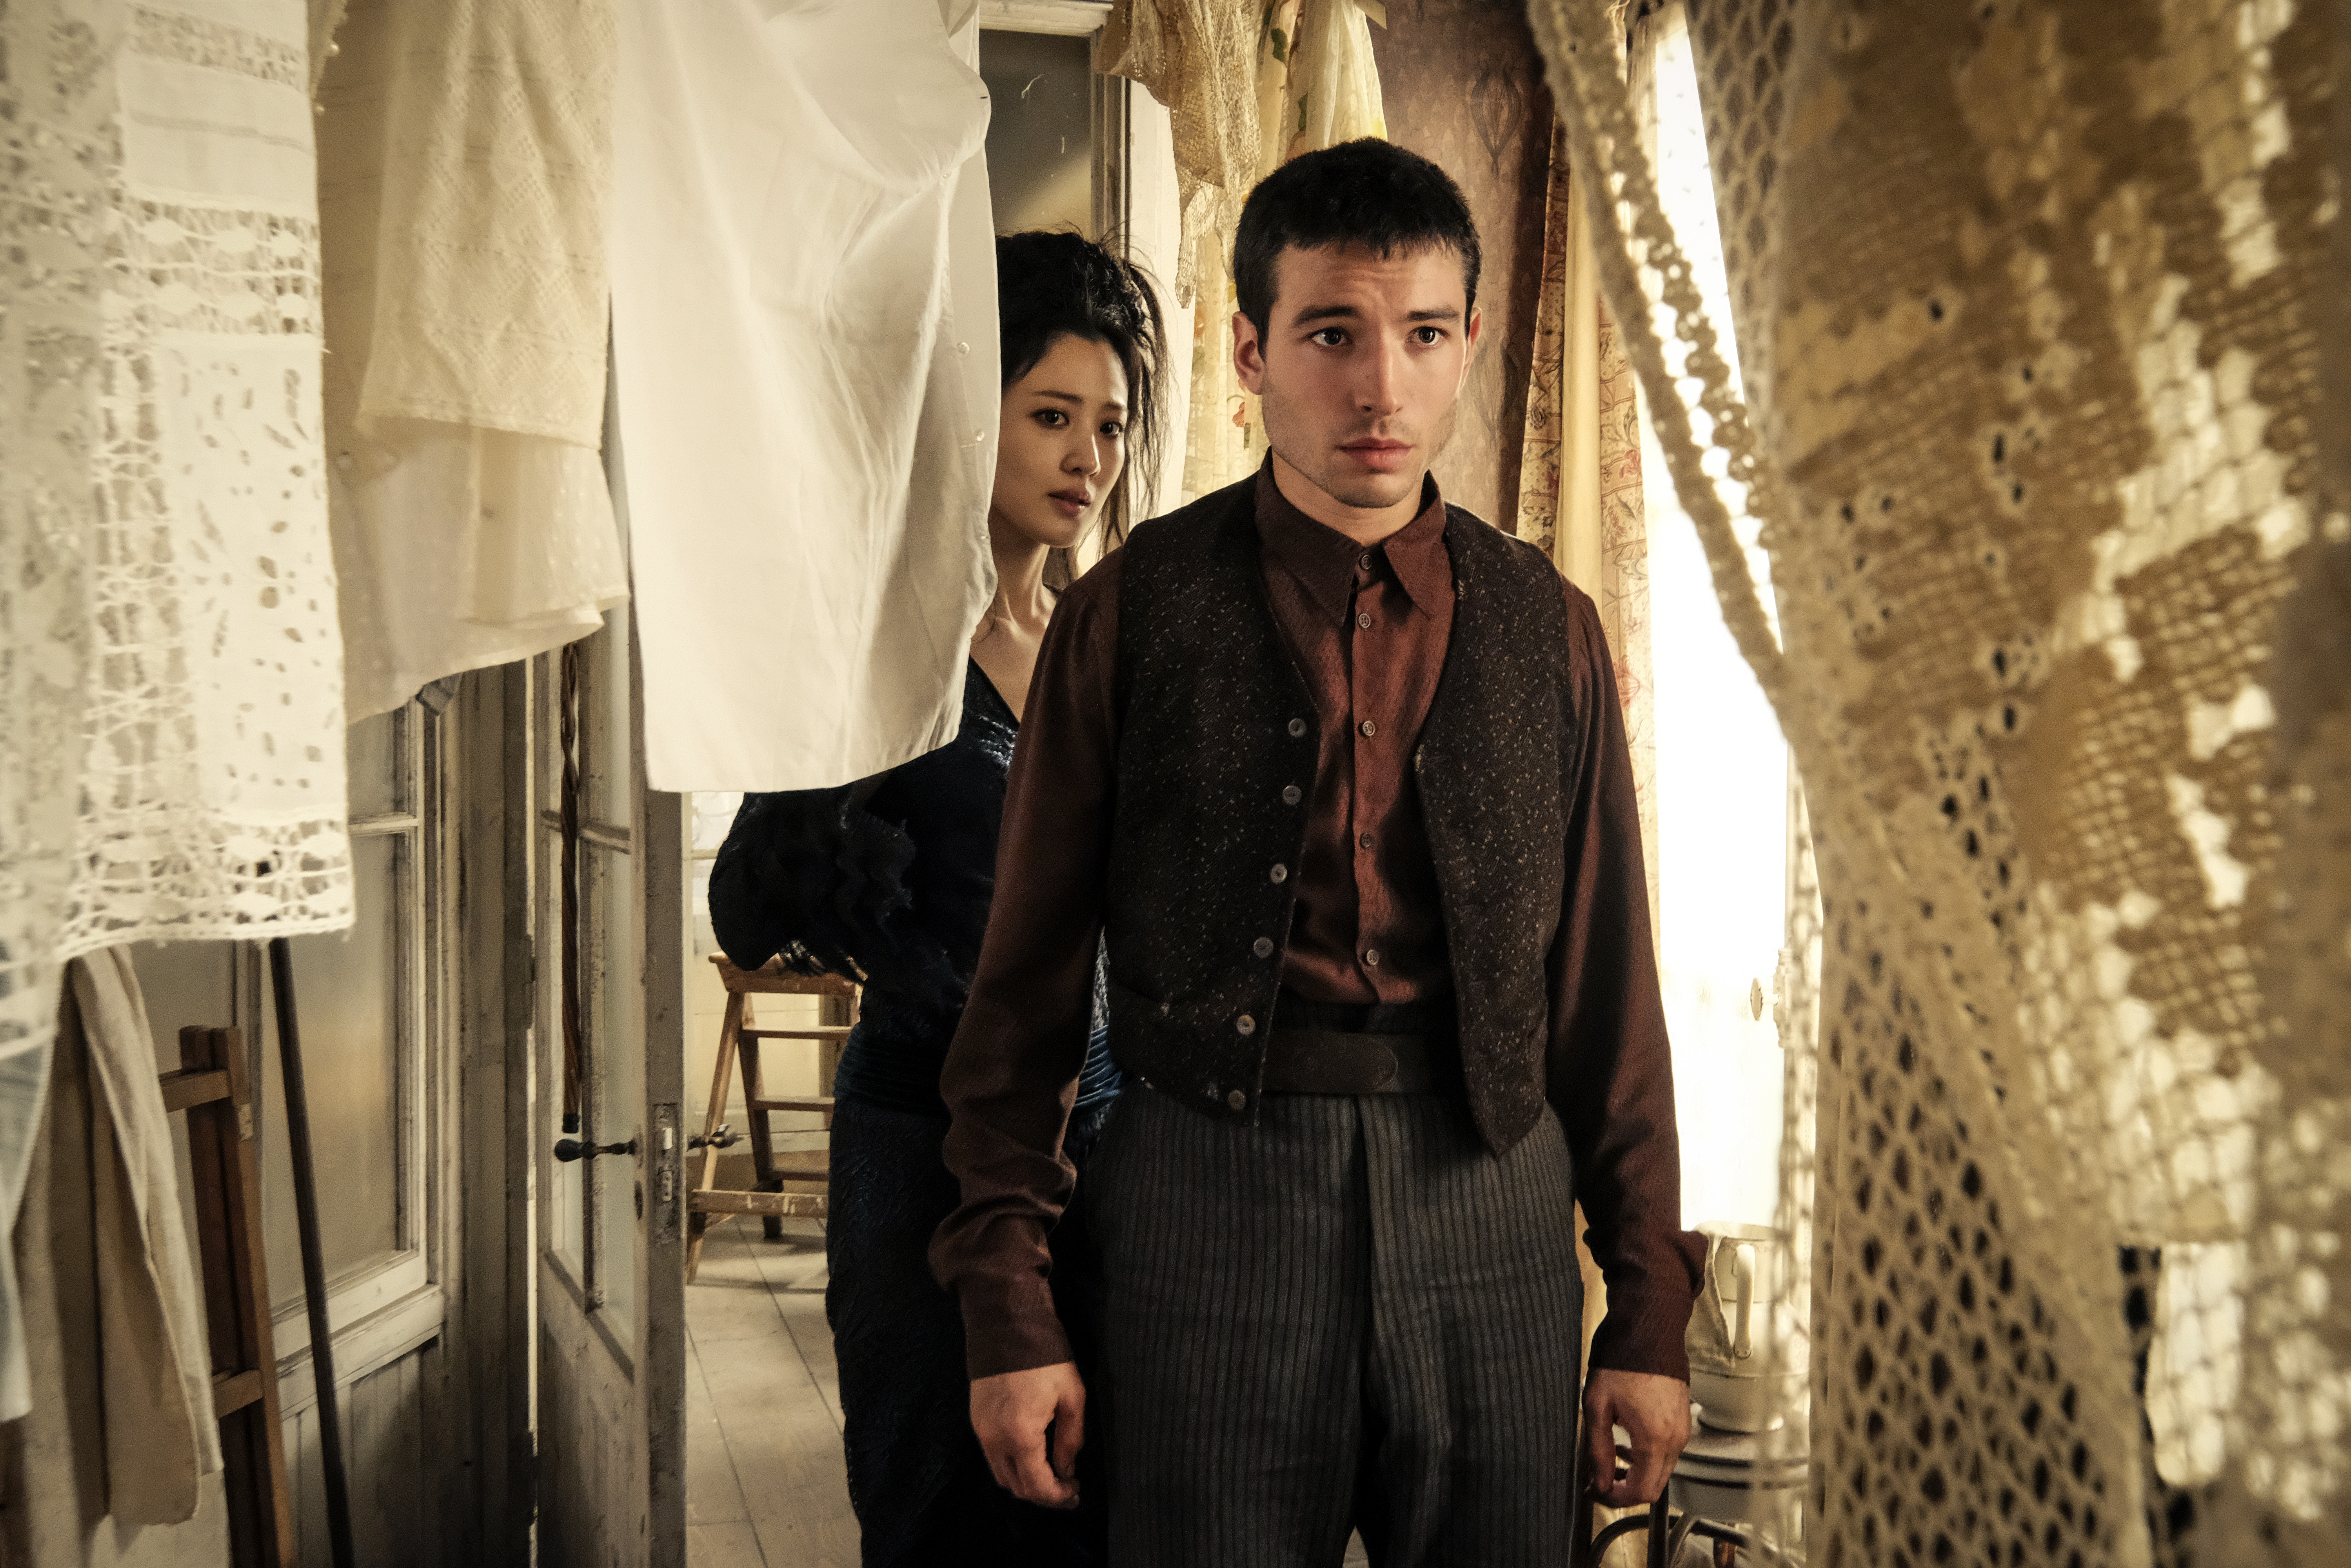 Credence and the Maledictus peer through hanging fabric.